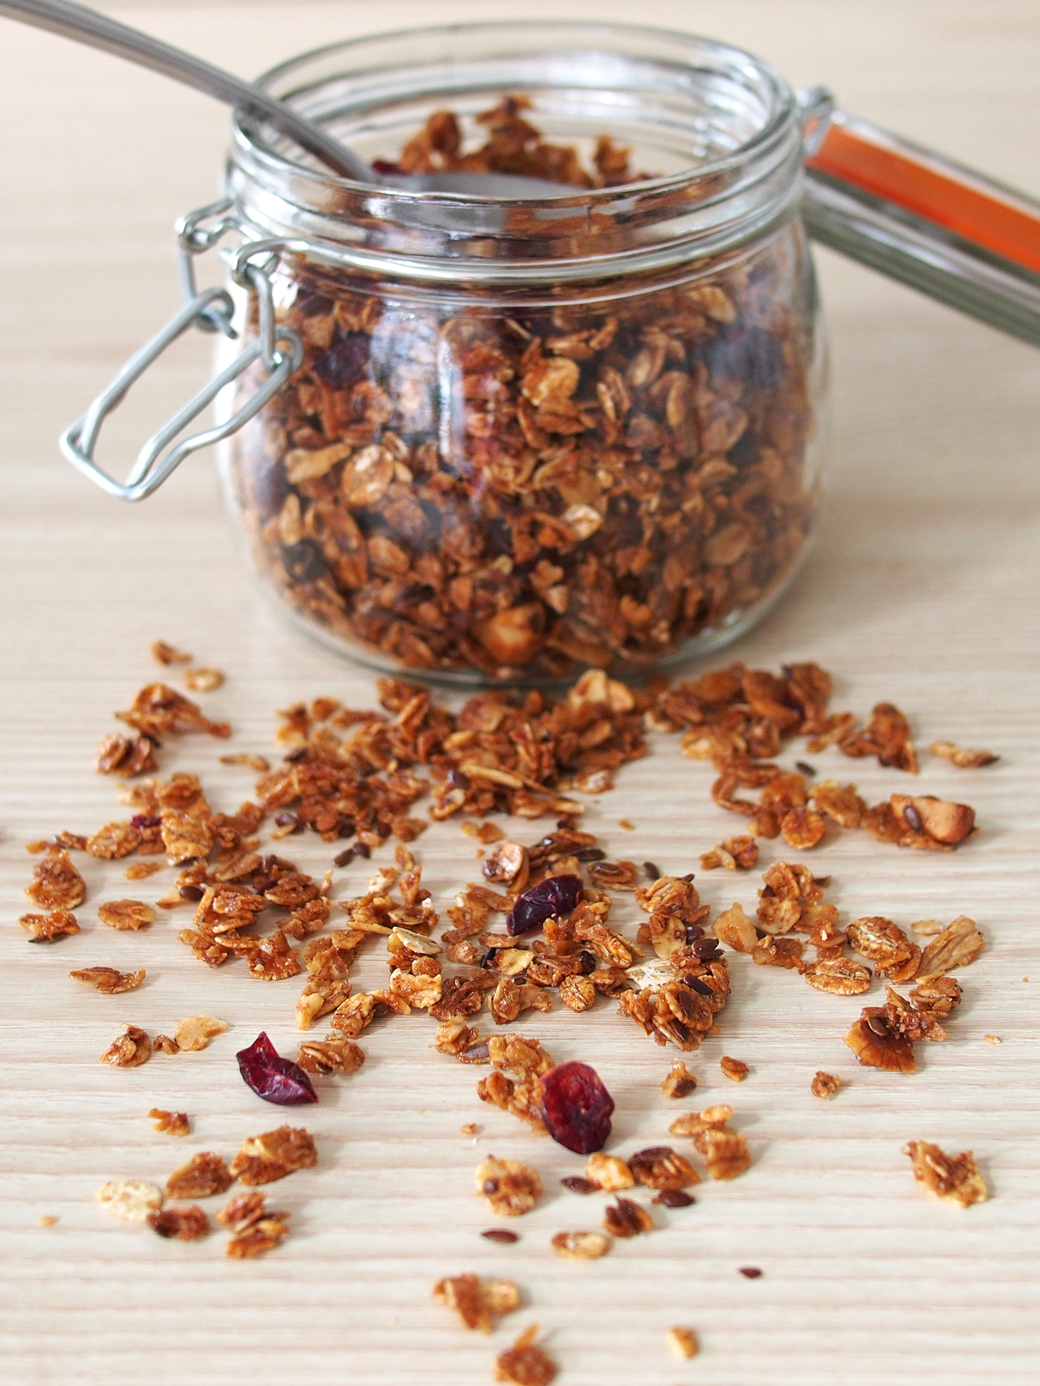 Autumn-Inspired Vegan Granola Recipe with Pumpkin Seeds and Dried Cranberries | The Worktop